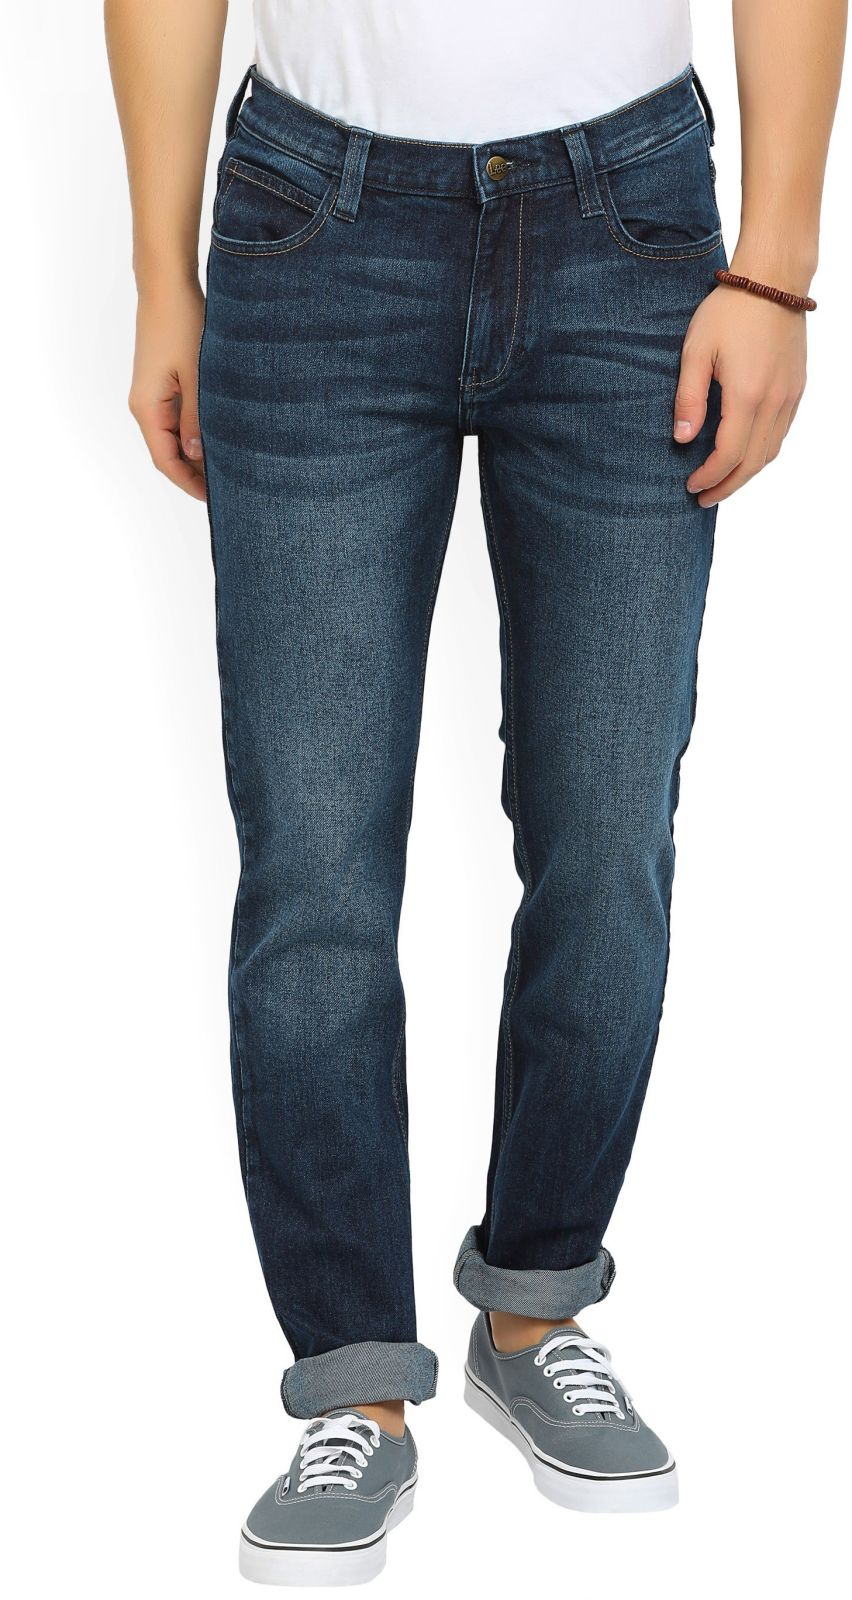 Lee Skinny Mens Dark Blue Jeans